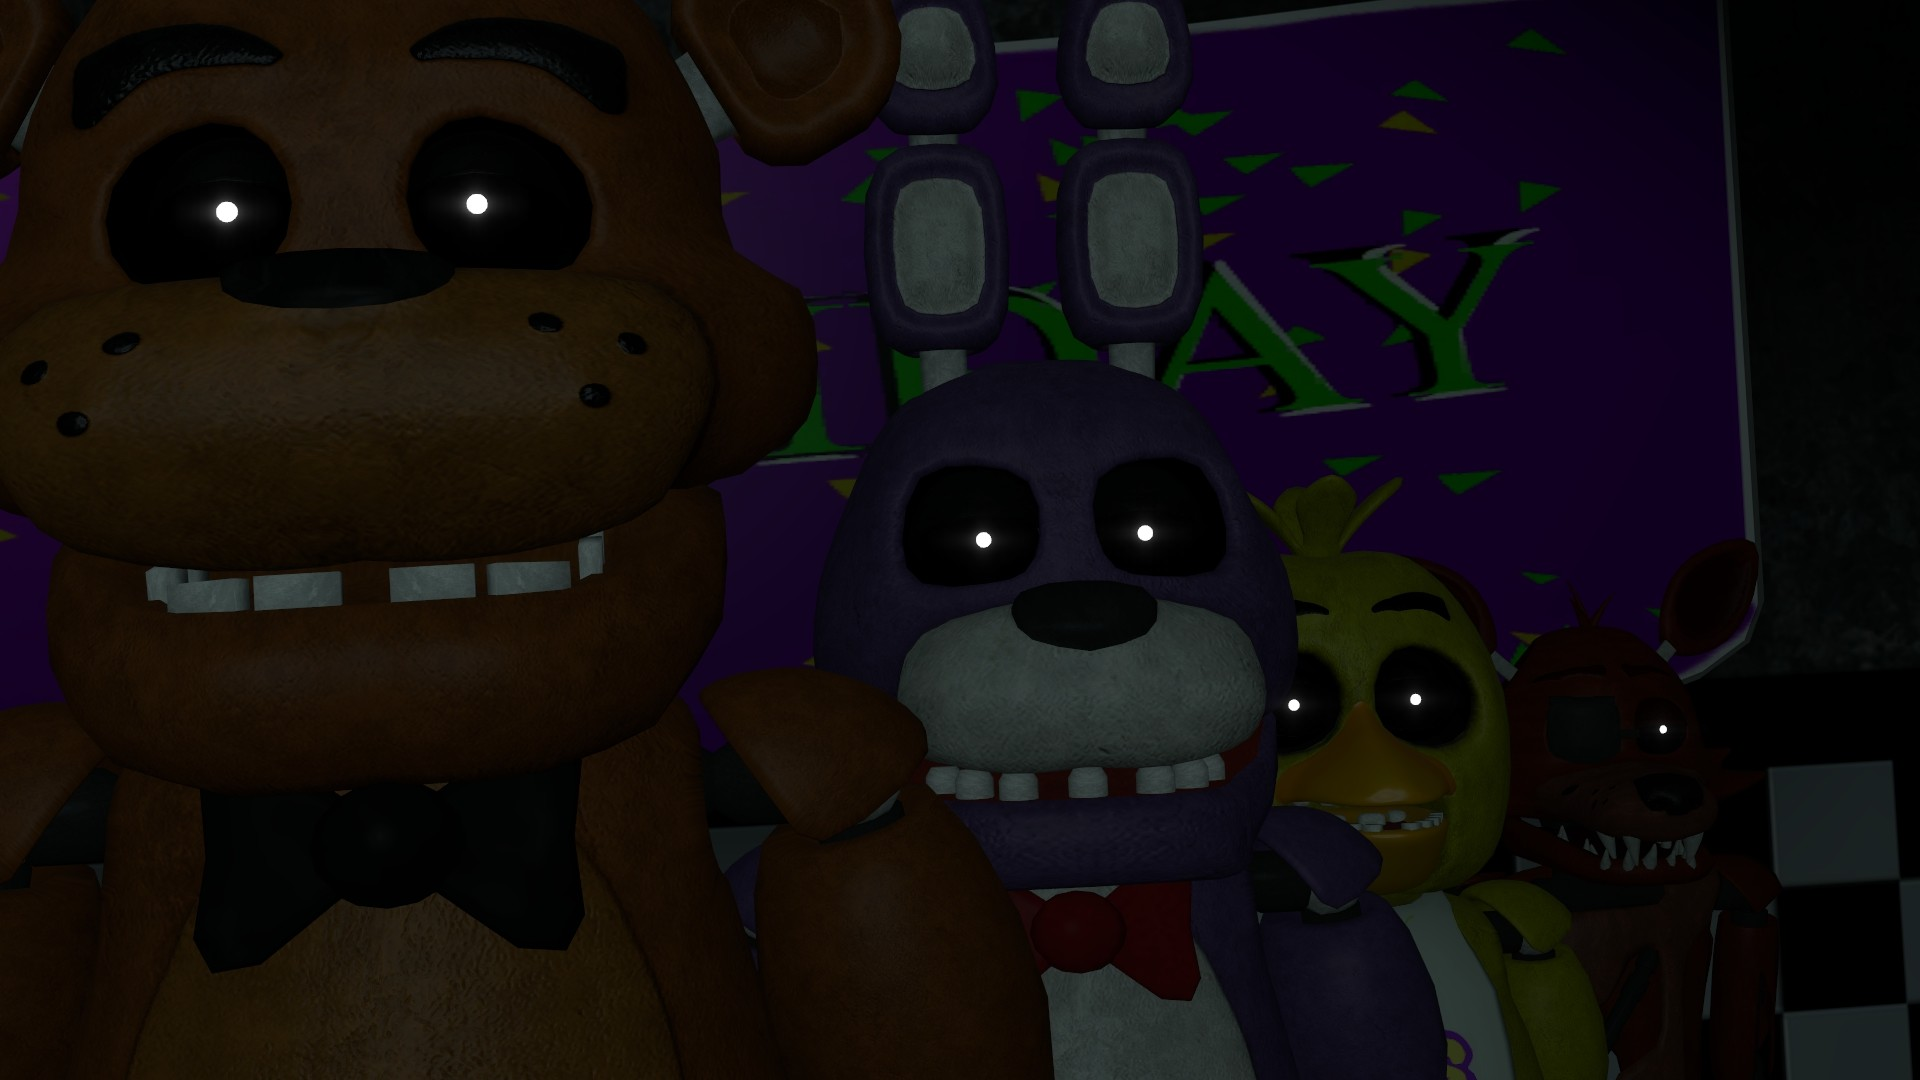 1920x1080 fnaf wallpaper A by datfurryoverthere on DeviantArt